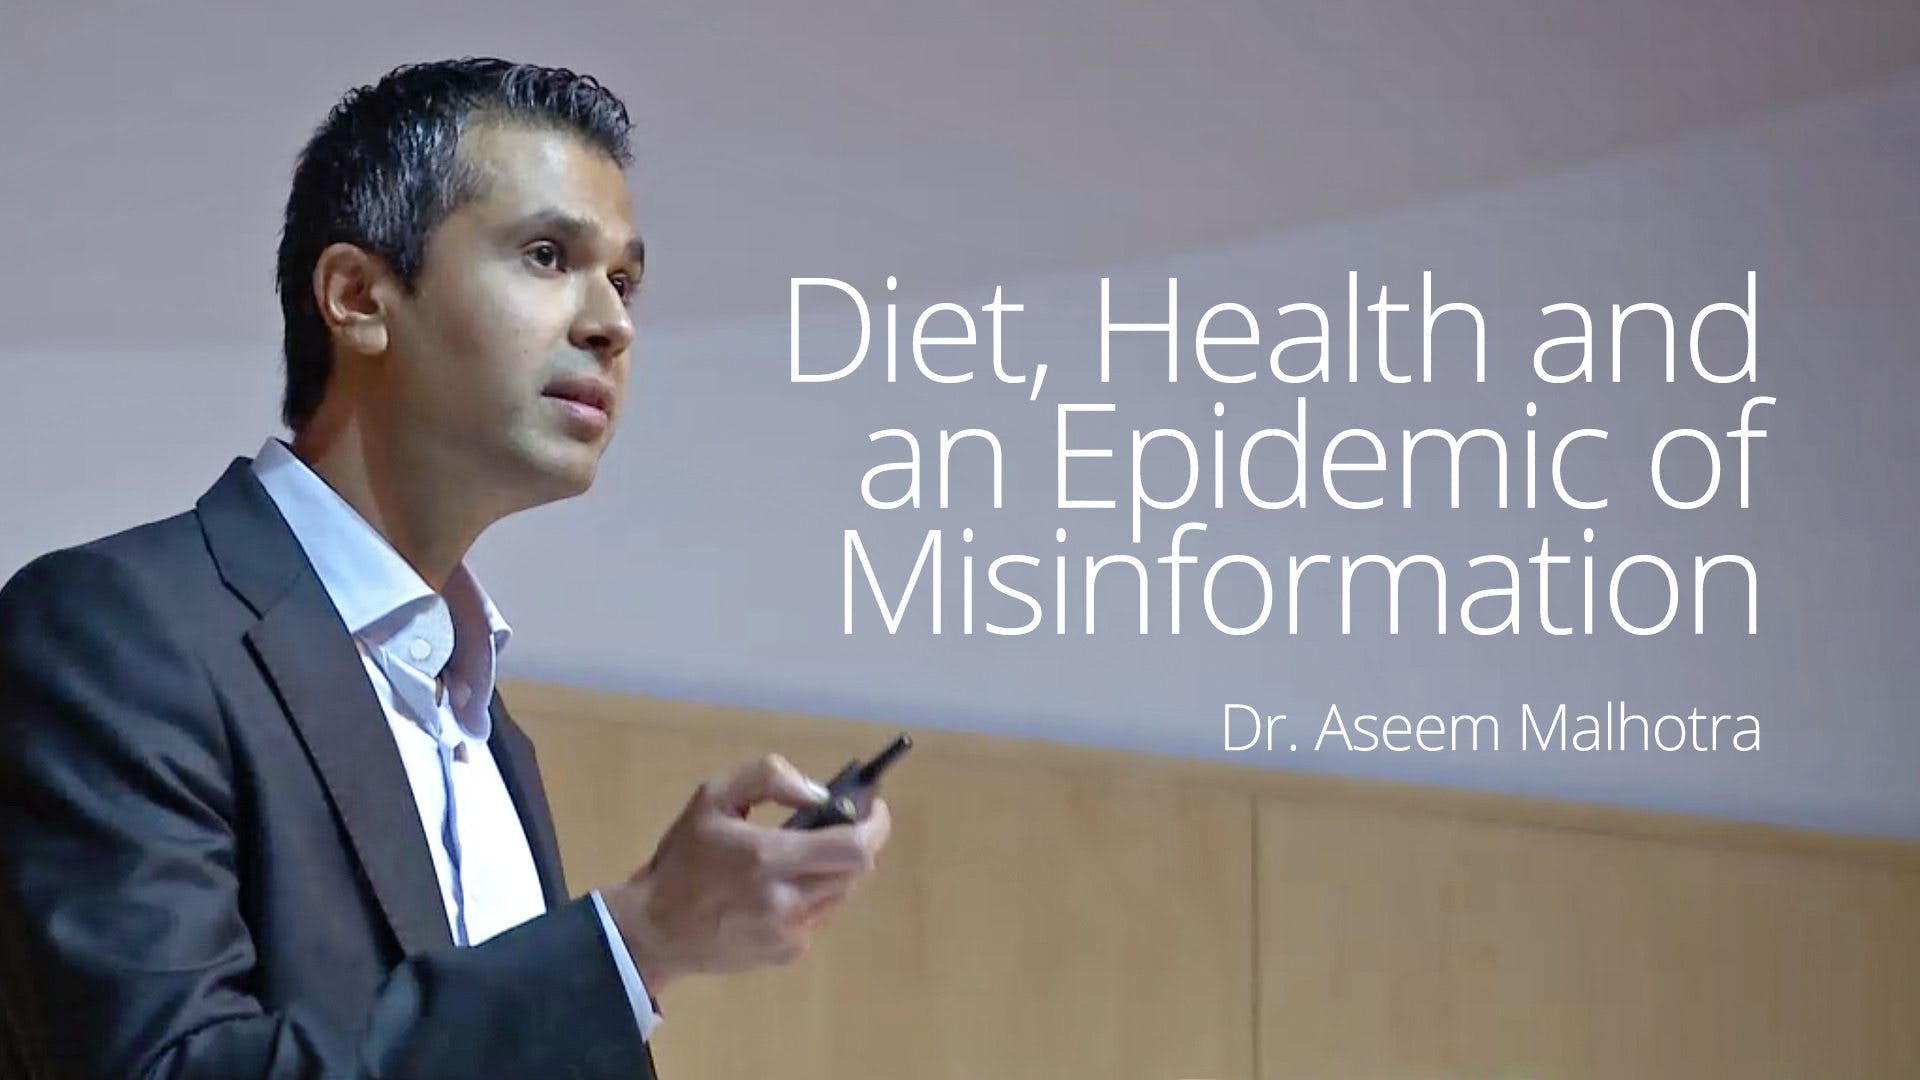 Diet, Health and an Epidemic of Misinformation